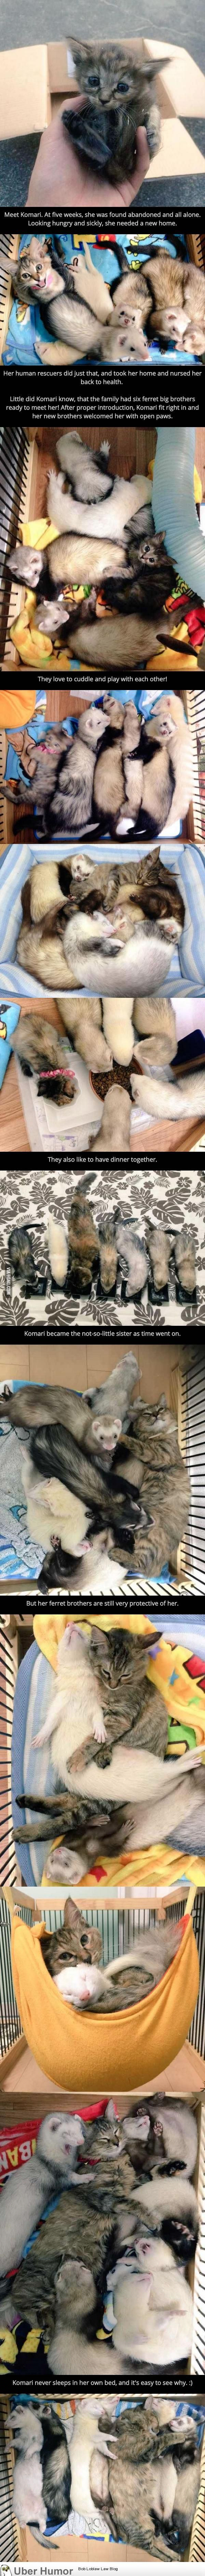 A kitten adopted by a ferret family ❤️, this is one of the most magical stories i've heard ❤️. Pure love.